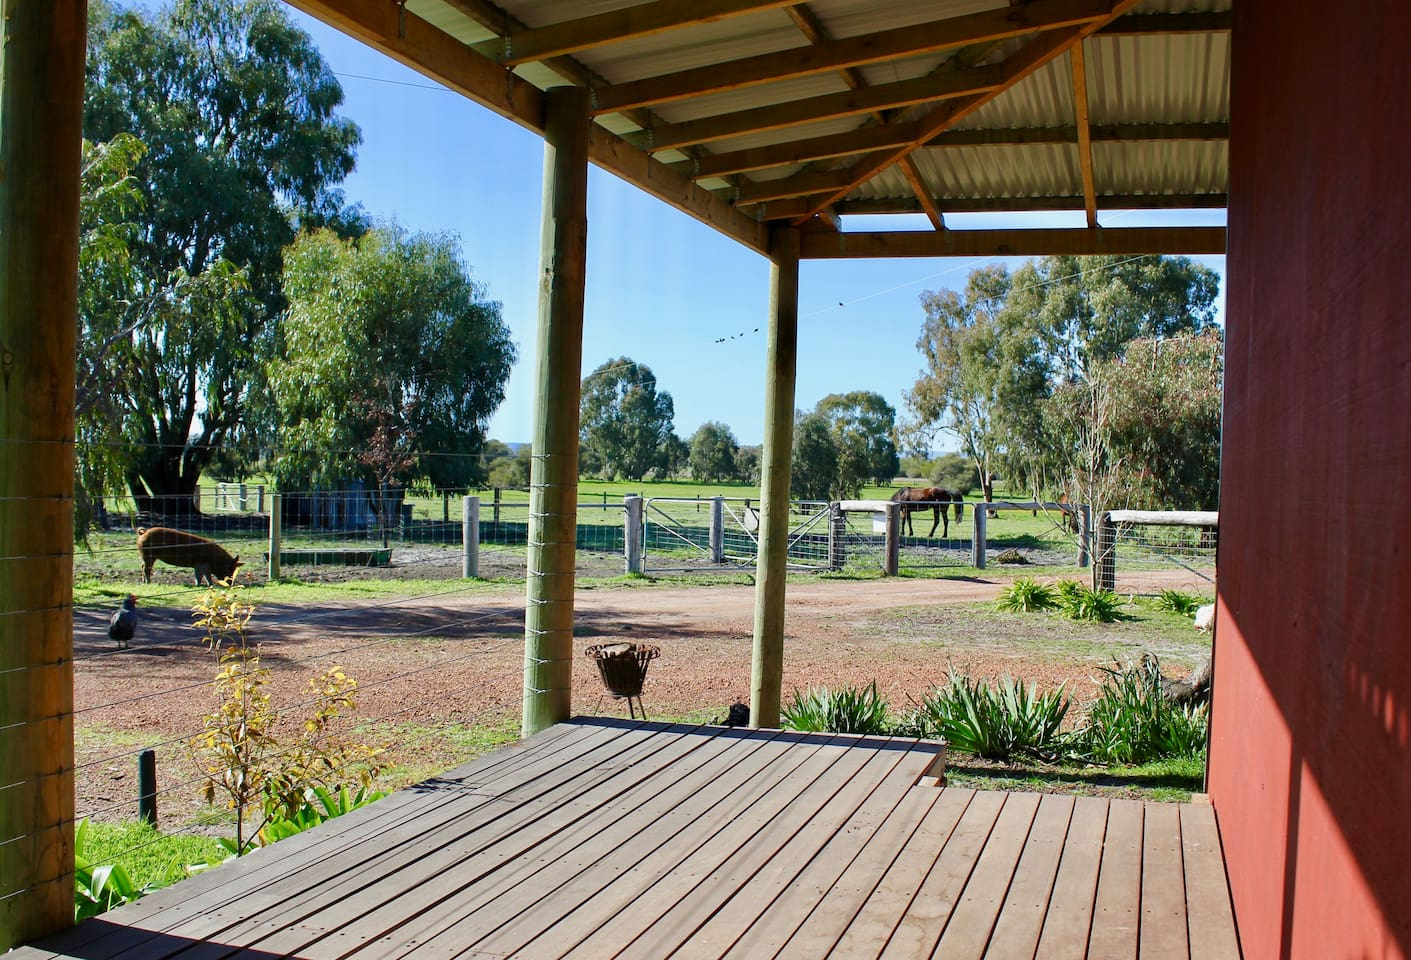 No need to imagine sitting on the the verandah enjoying a drink watching the horses.